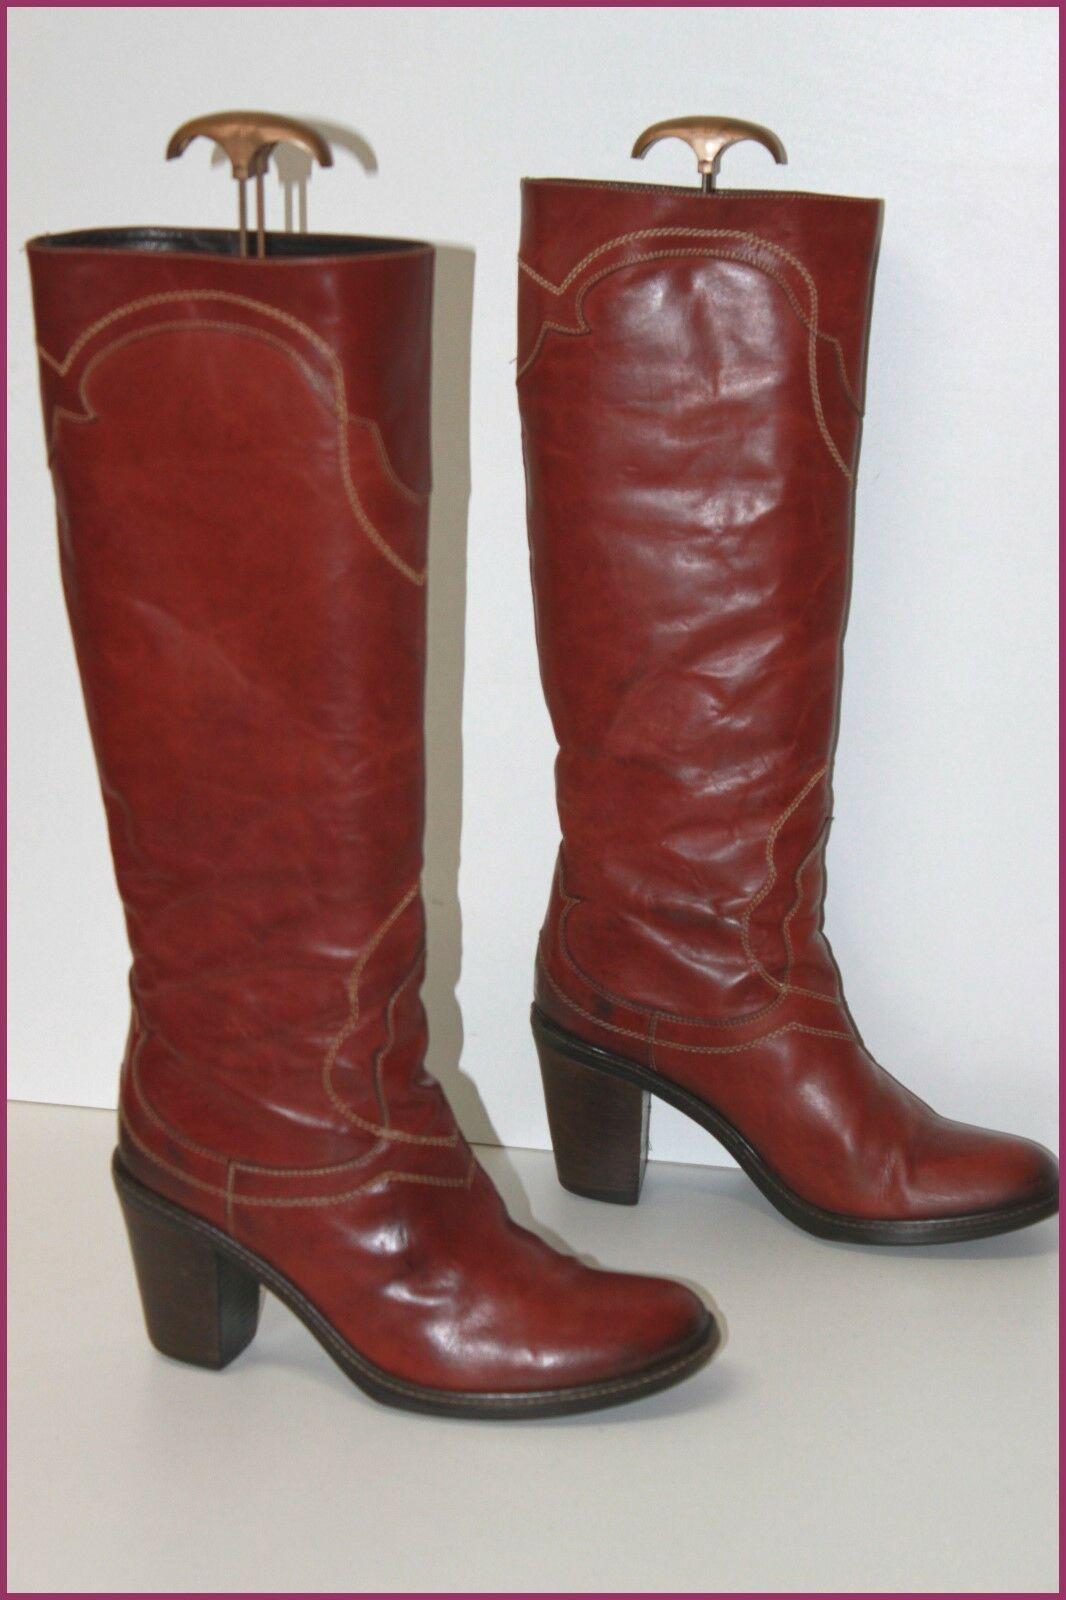 VIC DIPLOMACY Riding Boots heels Brown Leather Cognac T 39.5 VERY GOOD CONDITION